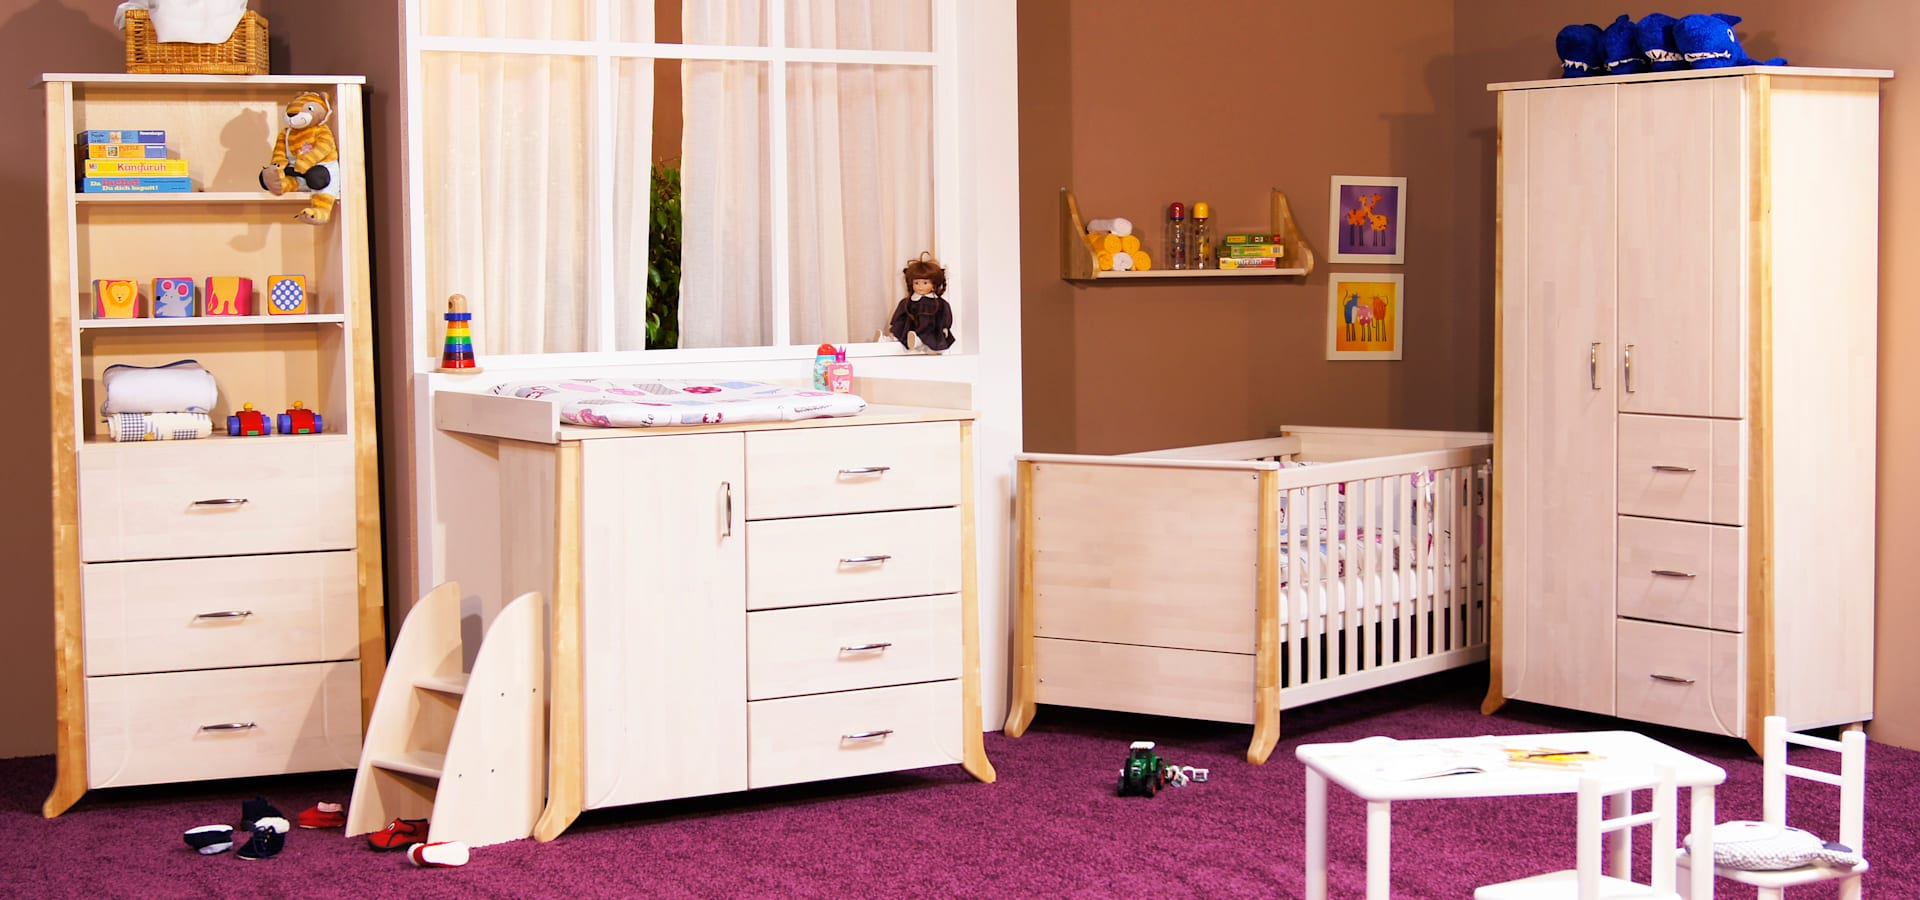 kinderzimmer nostalgie im landhausstil de taube kinder. Black Bedroom Furniture Sets. Home Design Ideas